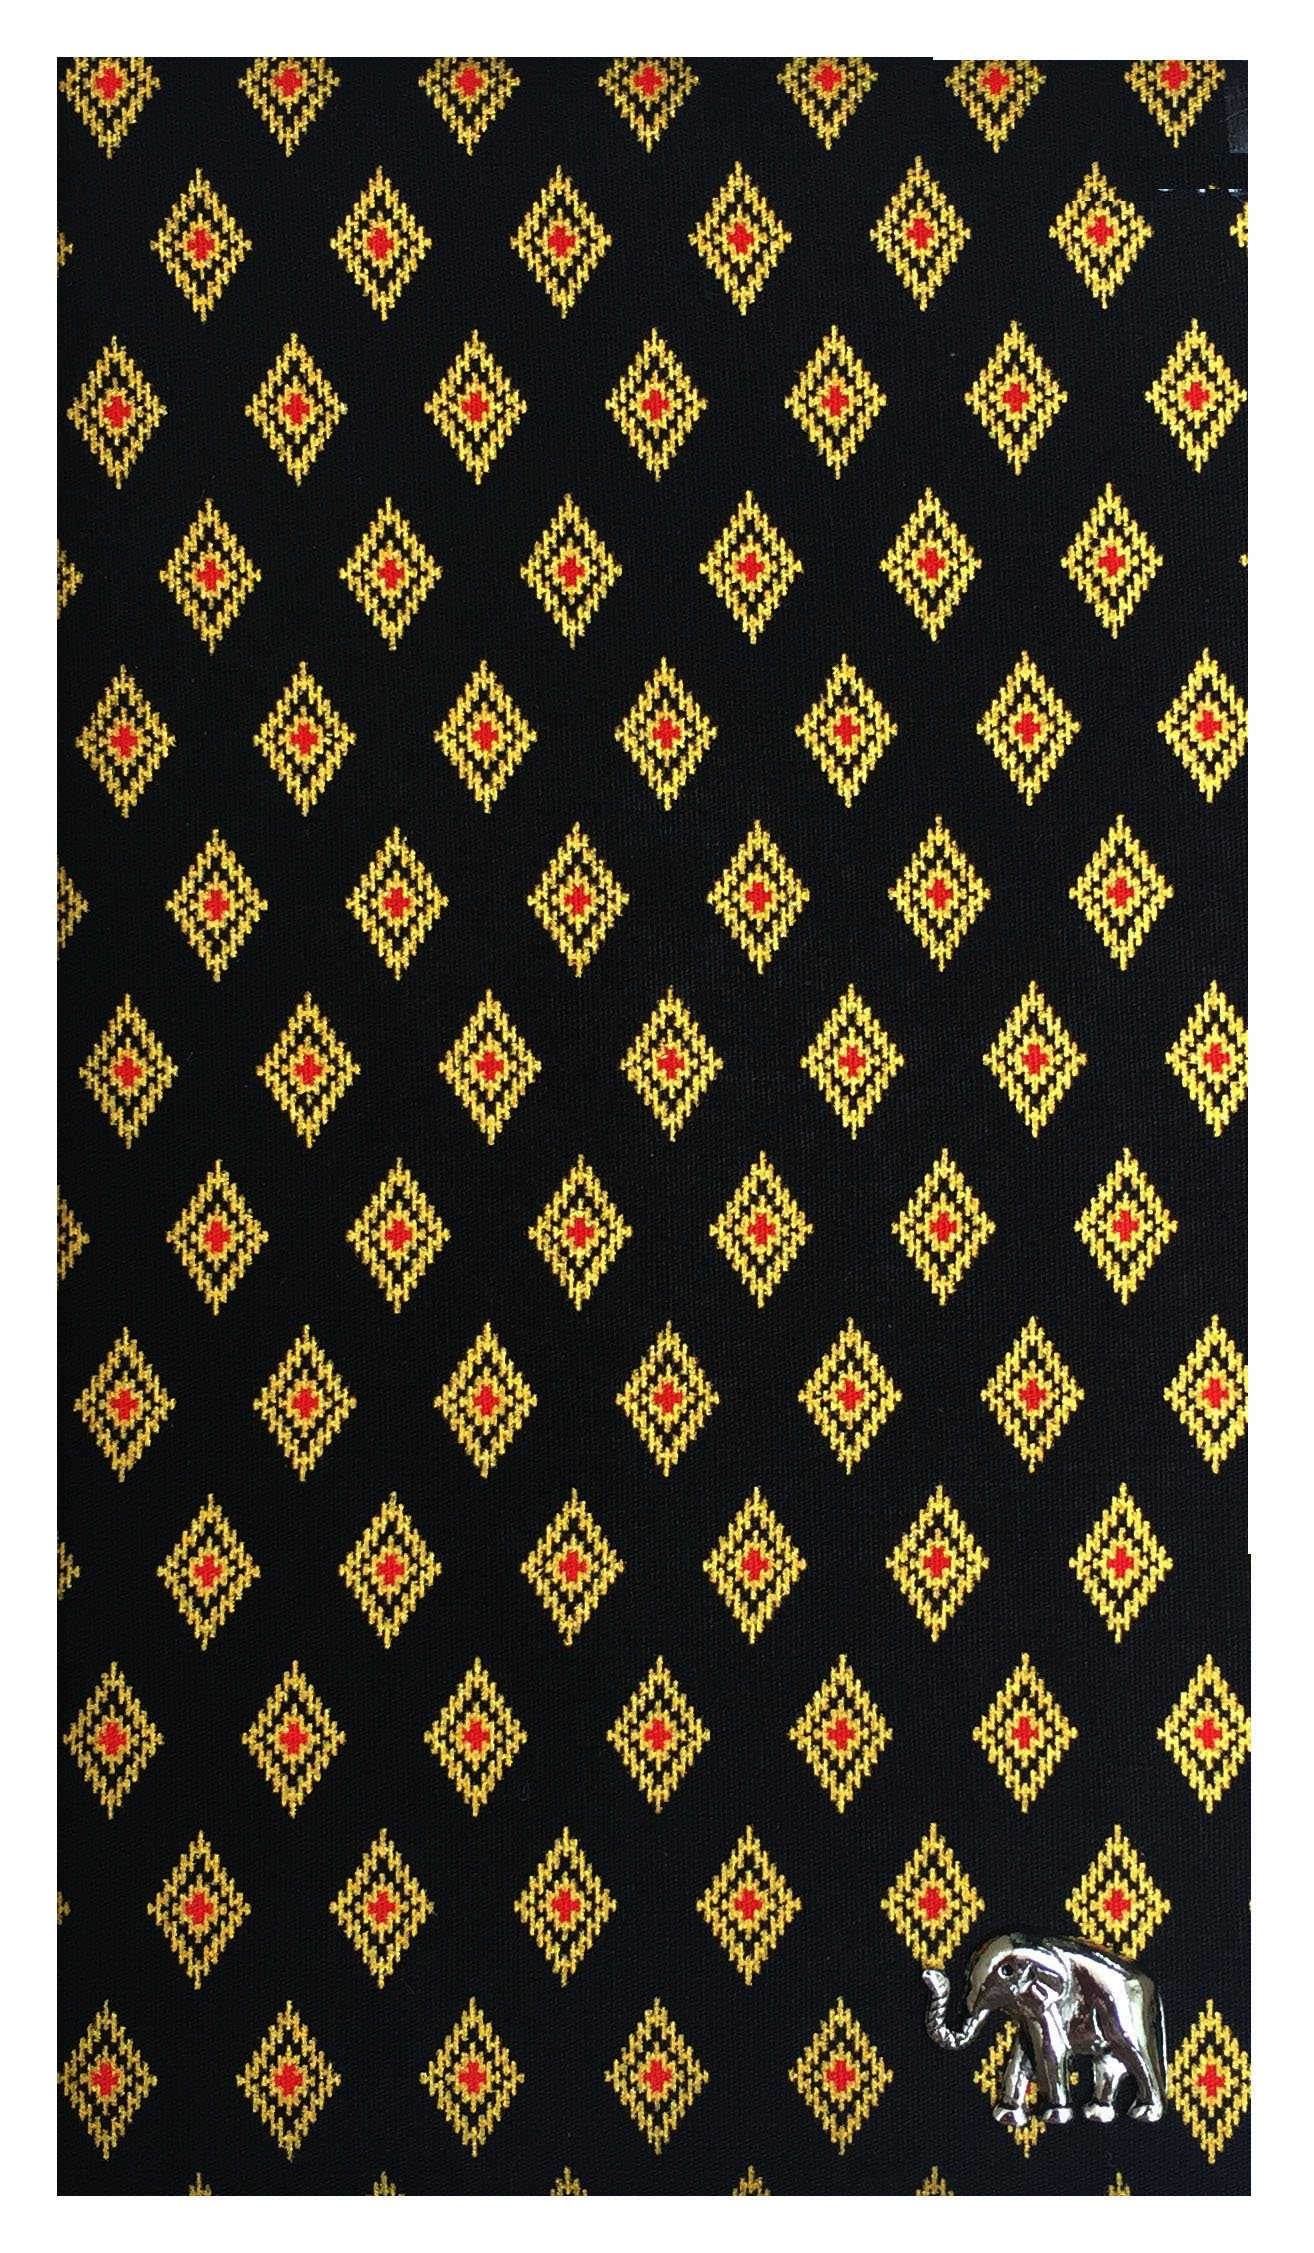 Check Registers Black & Gold Thai Designed Cotton Guest Check Presenter, Check Book Holder for Restaurant, Waitstaff Organizer, Server Book for Waiters,Check Accessories (With Plastic Cover)